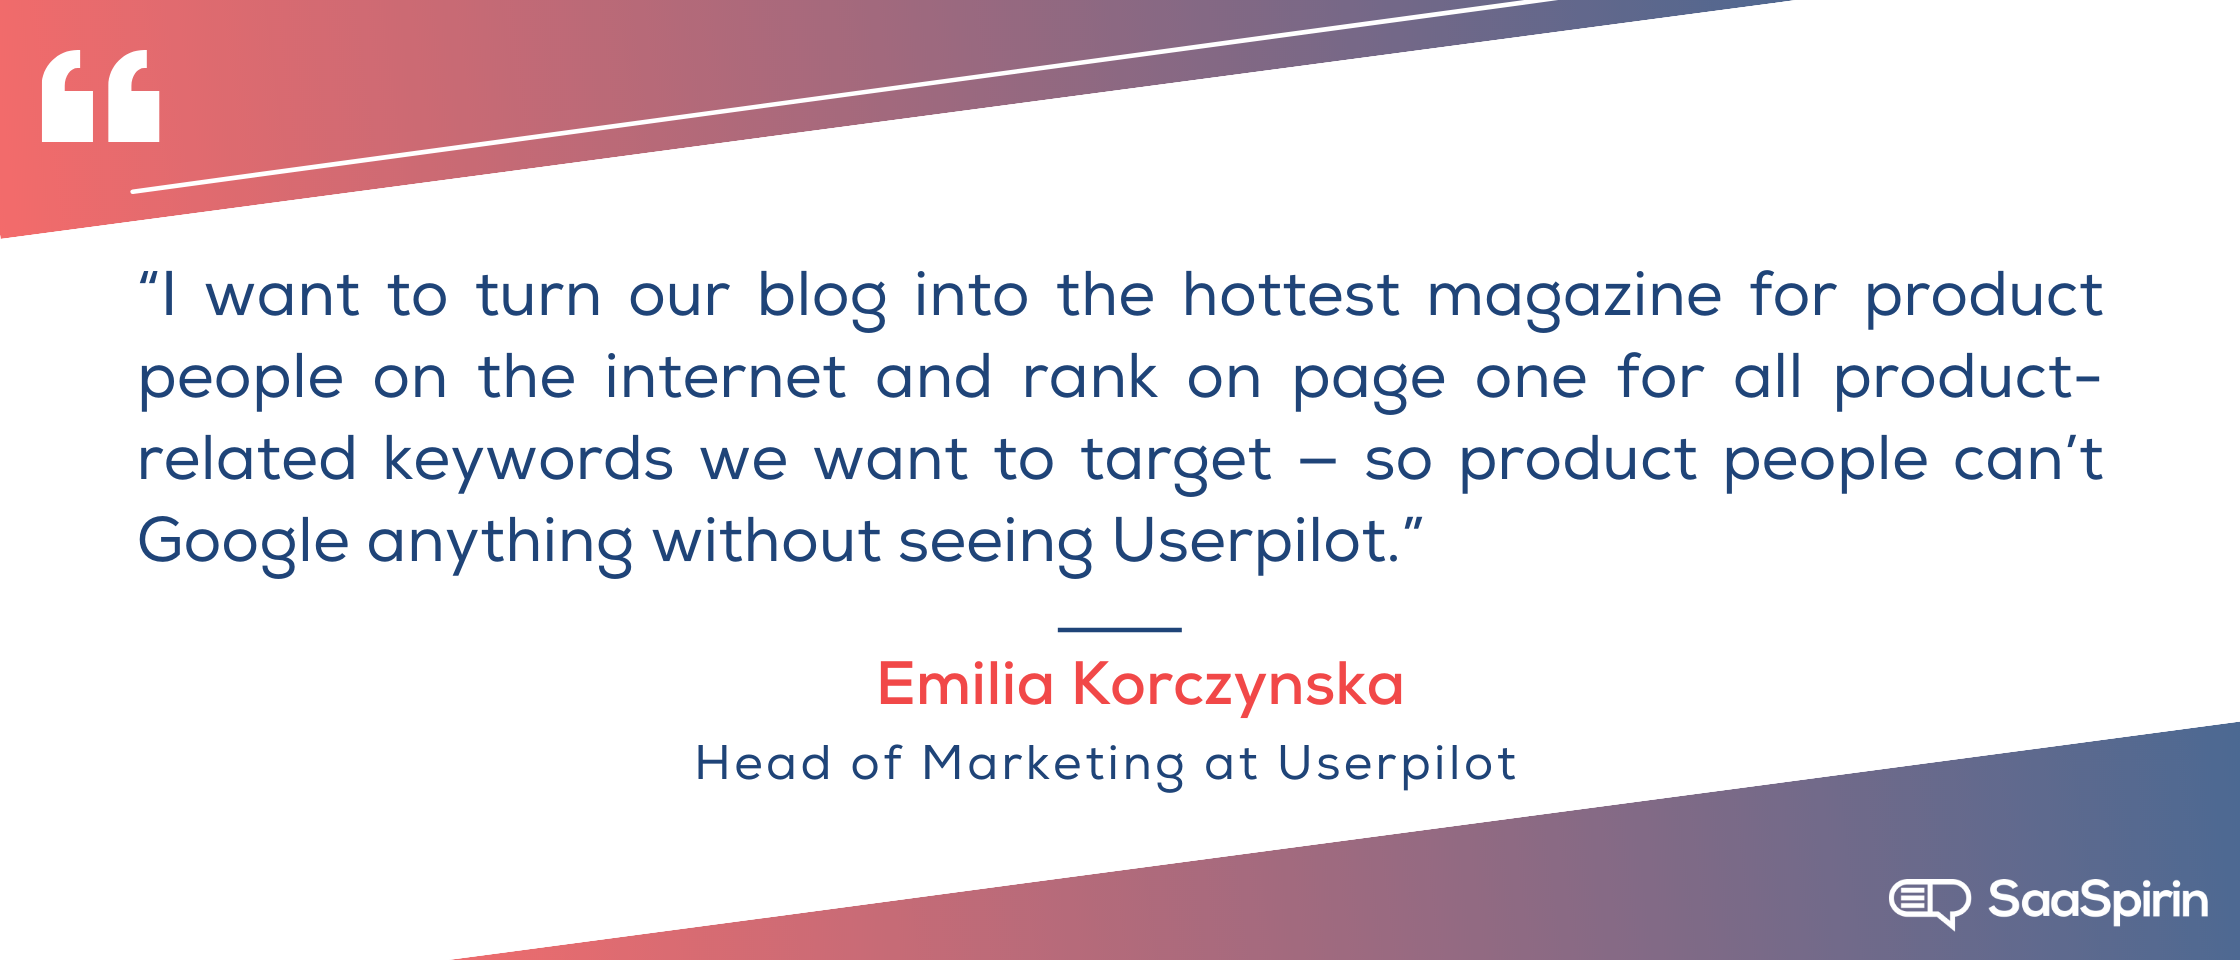 I-want-to-turn-our-blog-into-the-hottest-magazine-for-product-people-on-the-internet-and-rank-on-page-one-for-all-product-related-keywords-we-want-to-target-so product-people-cant-Google-anything-without-seeing-Userpil.png